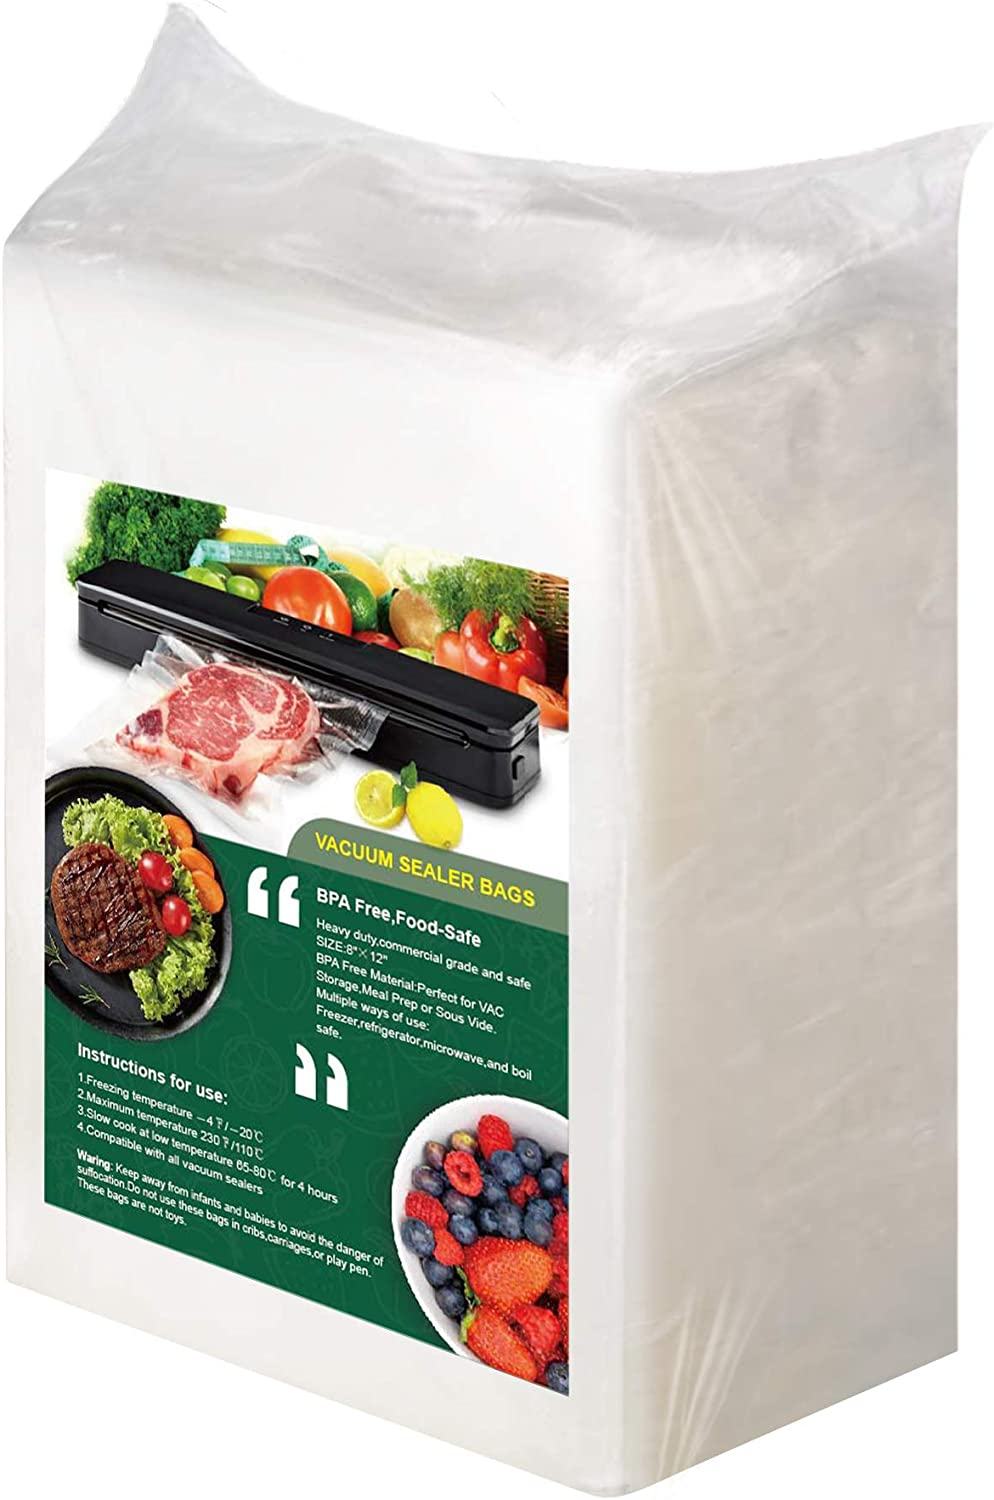 Quart Vacuum Seal Bags 200, 8 x12 inch Vacuum Sealer Bags Heavy Duty Precut Food Saver Bags with 80 Removable Food Labels Seal a Meal Bags Great for Sous Vide Meal Prep Vac Storage Freezer